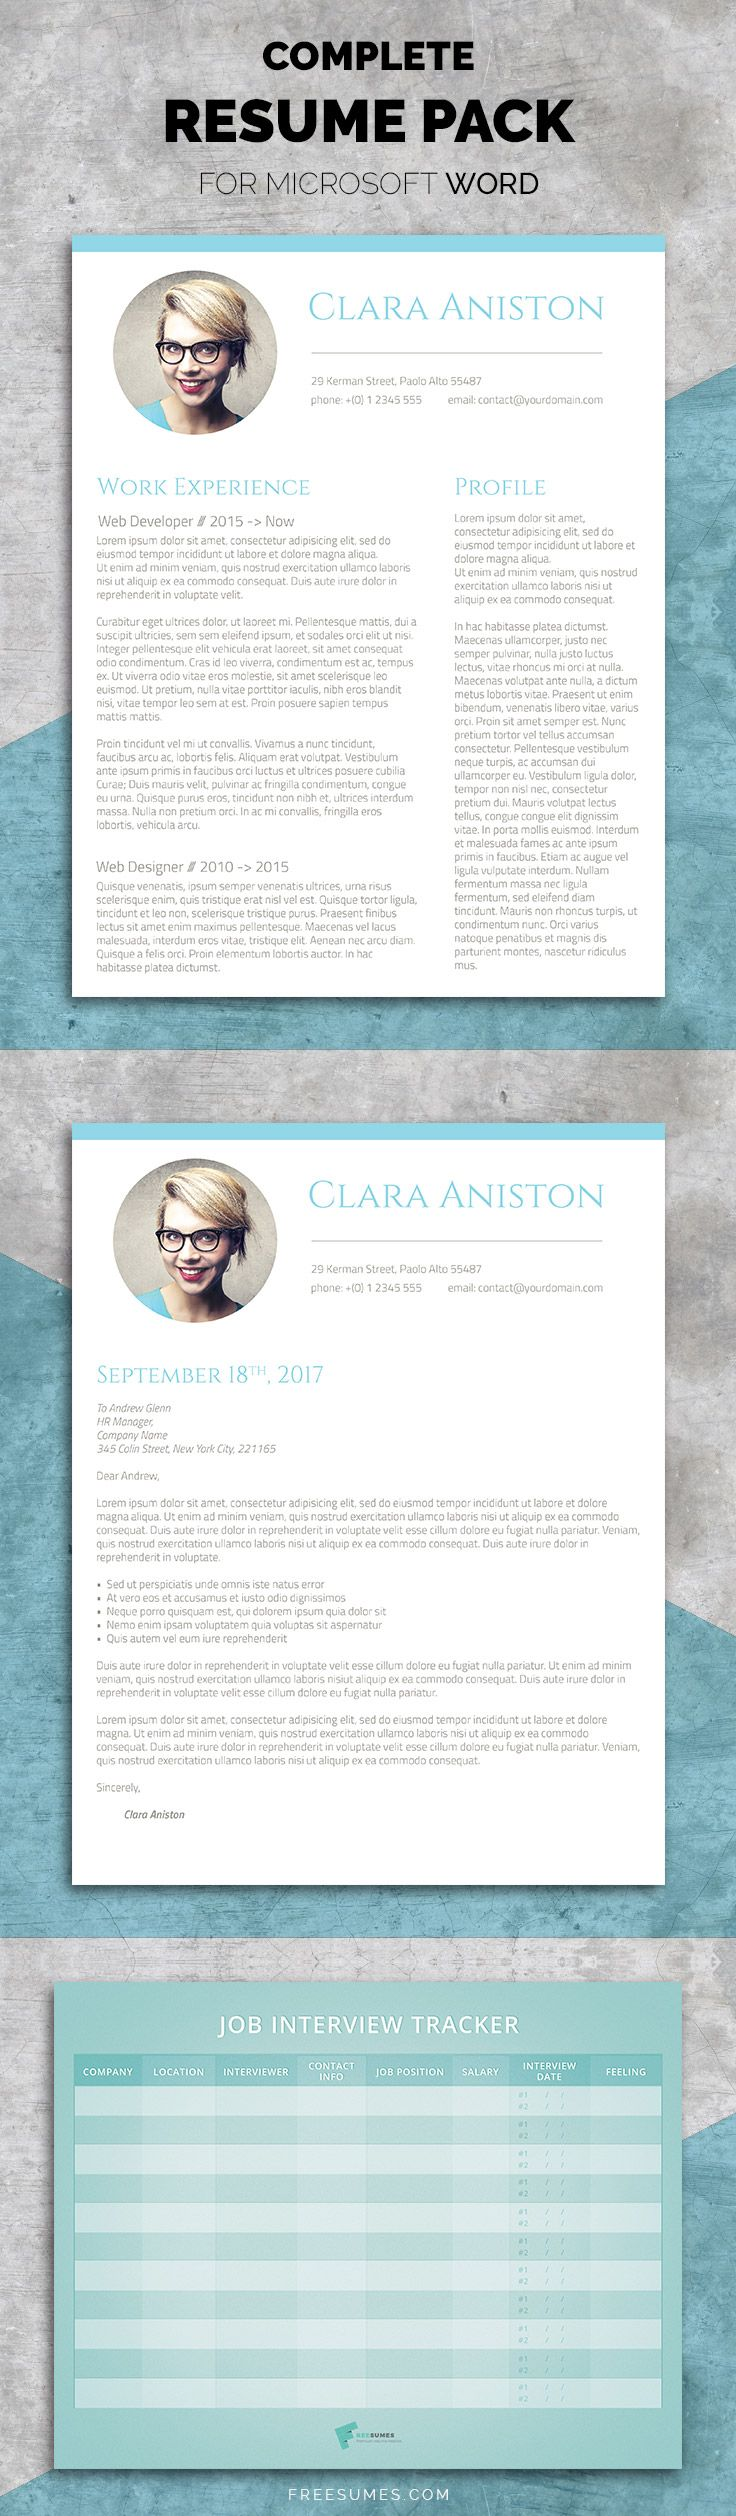 resume template set the simple snapshot a professionally designed resume template in word format - Resume Format Letter Size